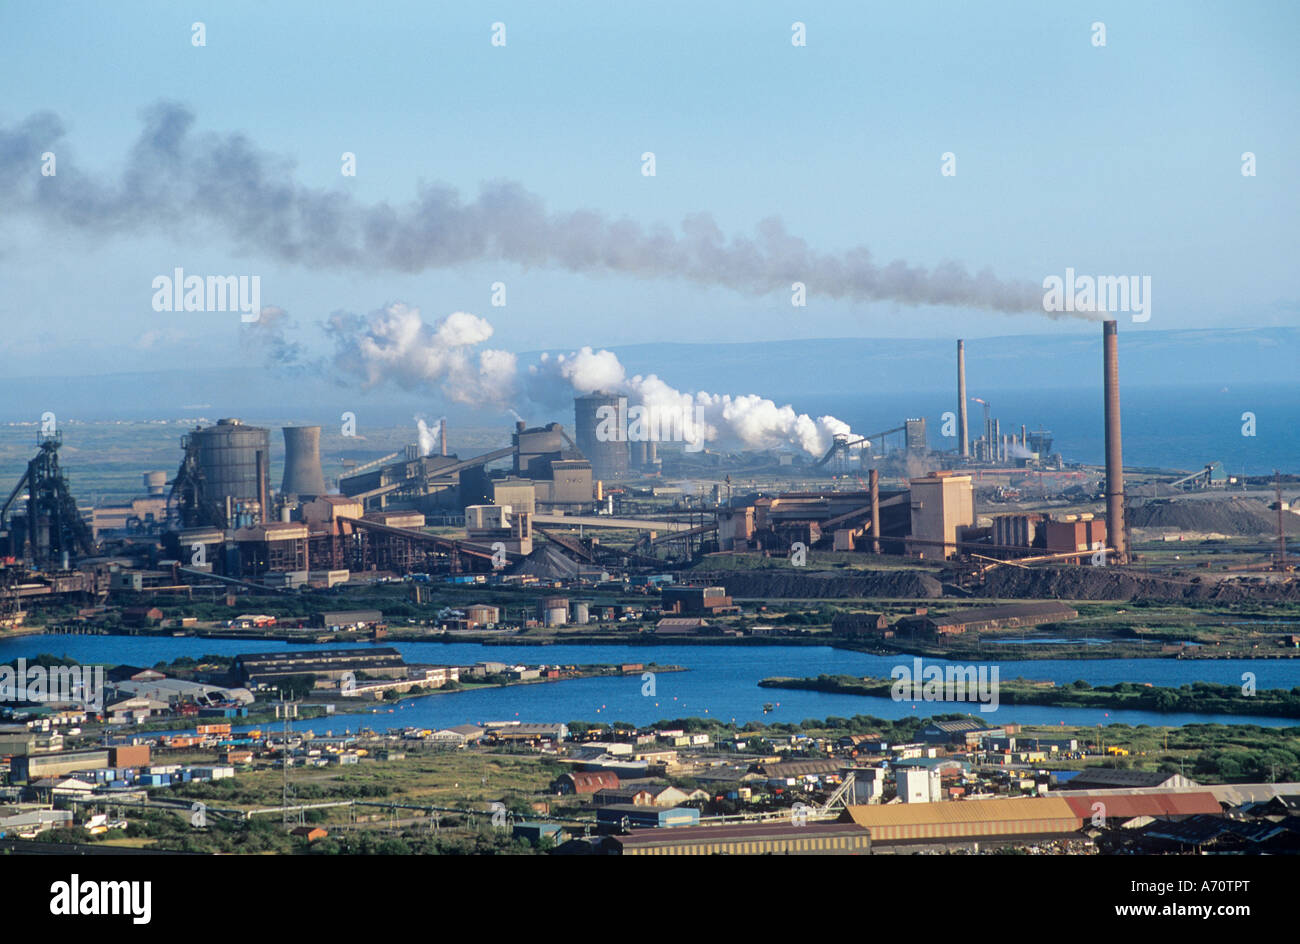 Steelworks, Port Talbort, Wales, UK, GB. - Stock Image